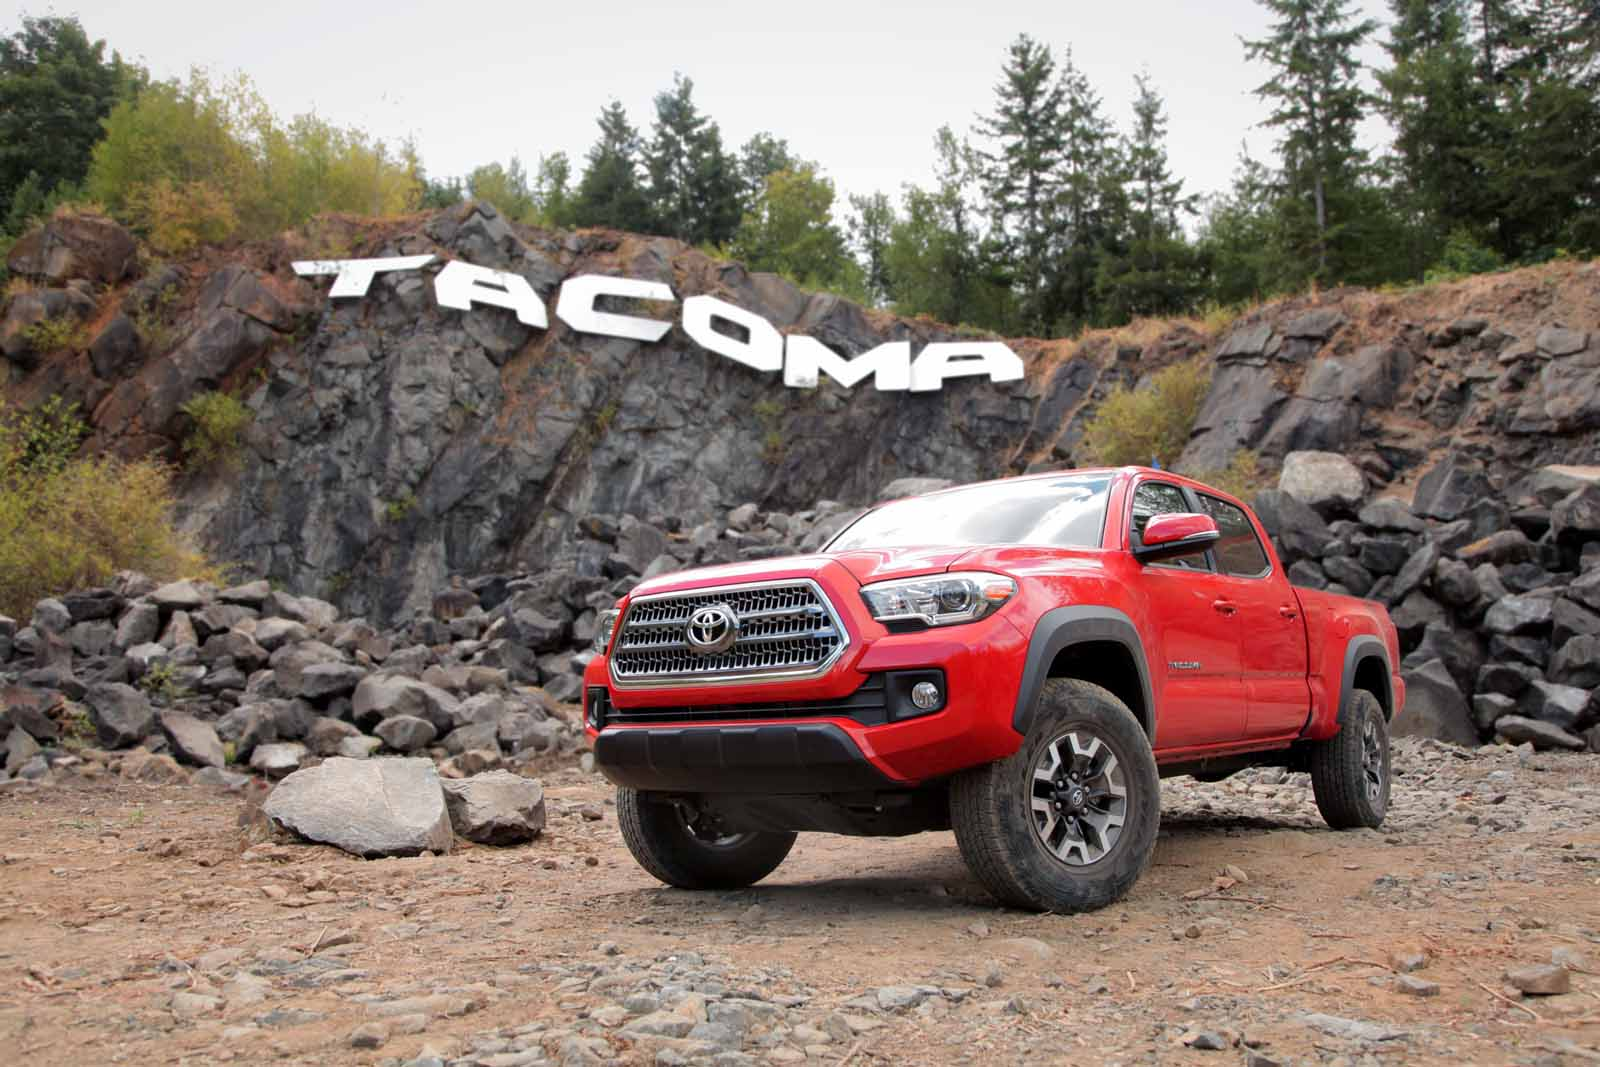 2016 toyota tacoma first drive toyota nation forum toyota car and truck forums. Black Bedroom Furniture Sets. Home Design Ideas